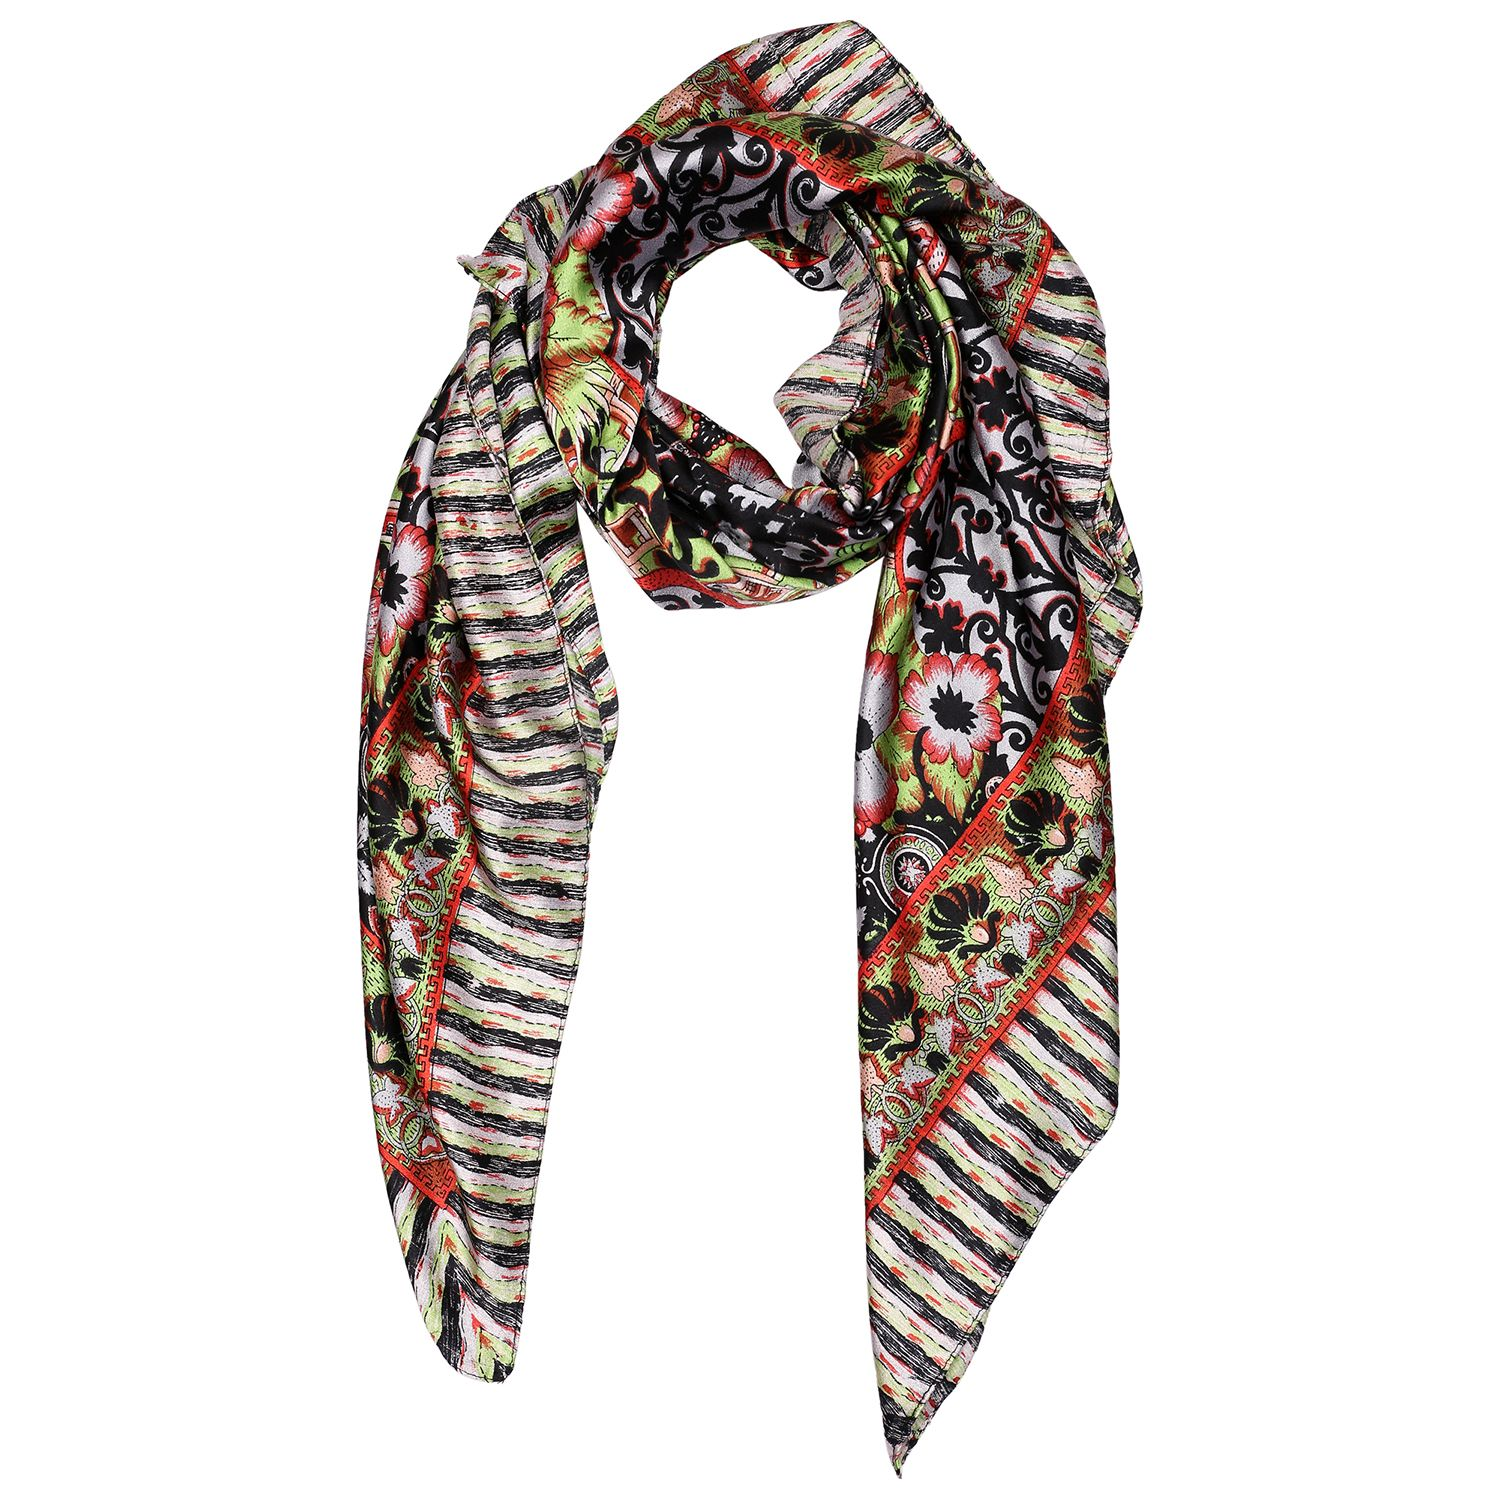 Silk Scarf Multi Color Border Floral Print